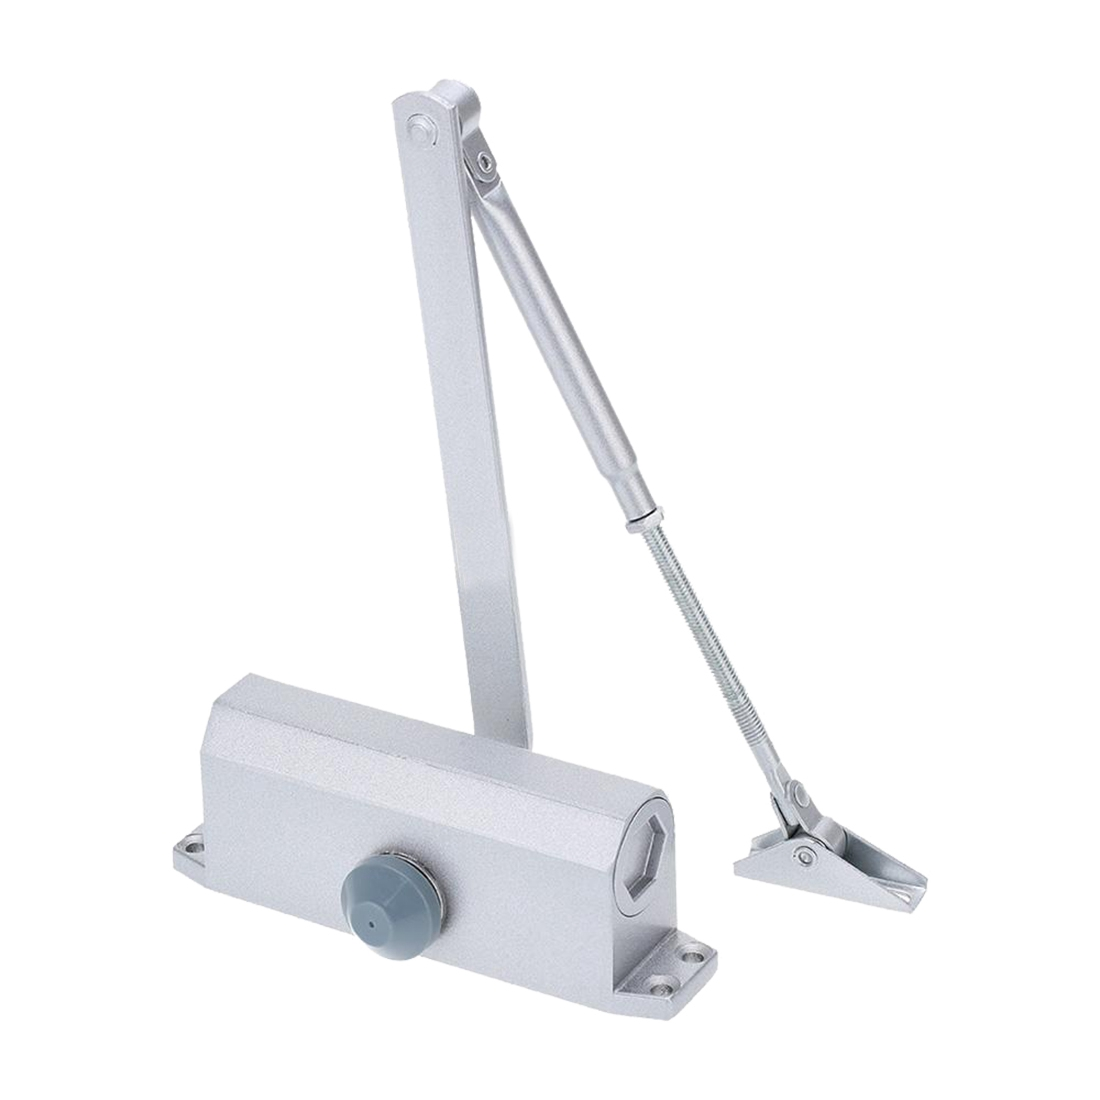 45-65KG Automatic Heavy Duty FIRE RATED Door Closer45-65KG Automatic Heavy Duty FIRE RATED Door Closer